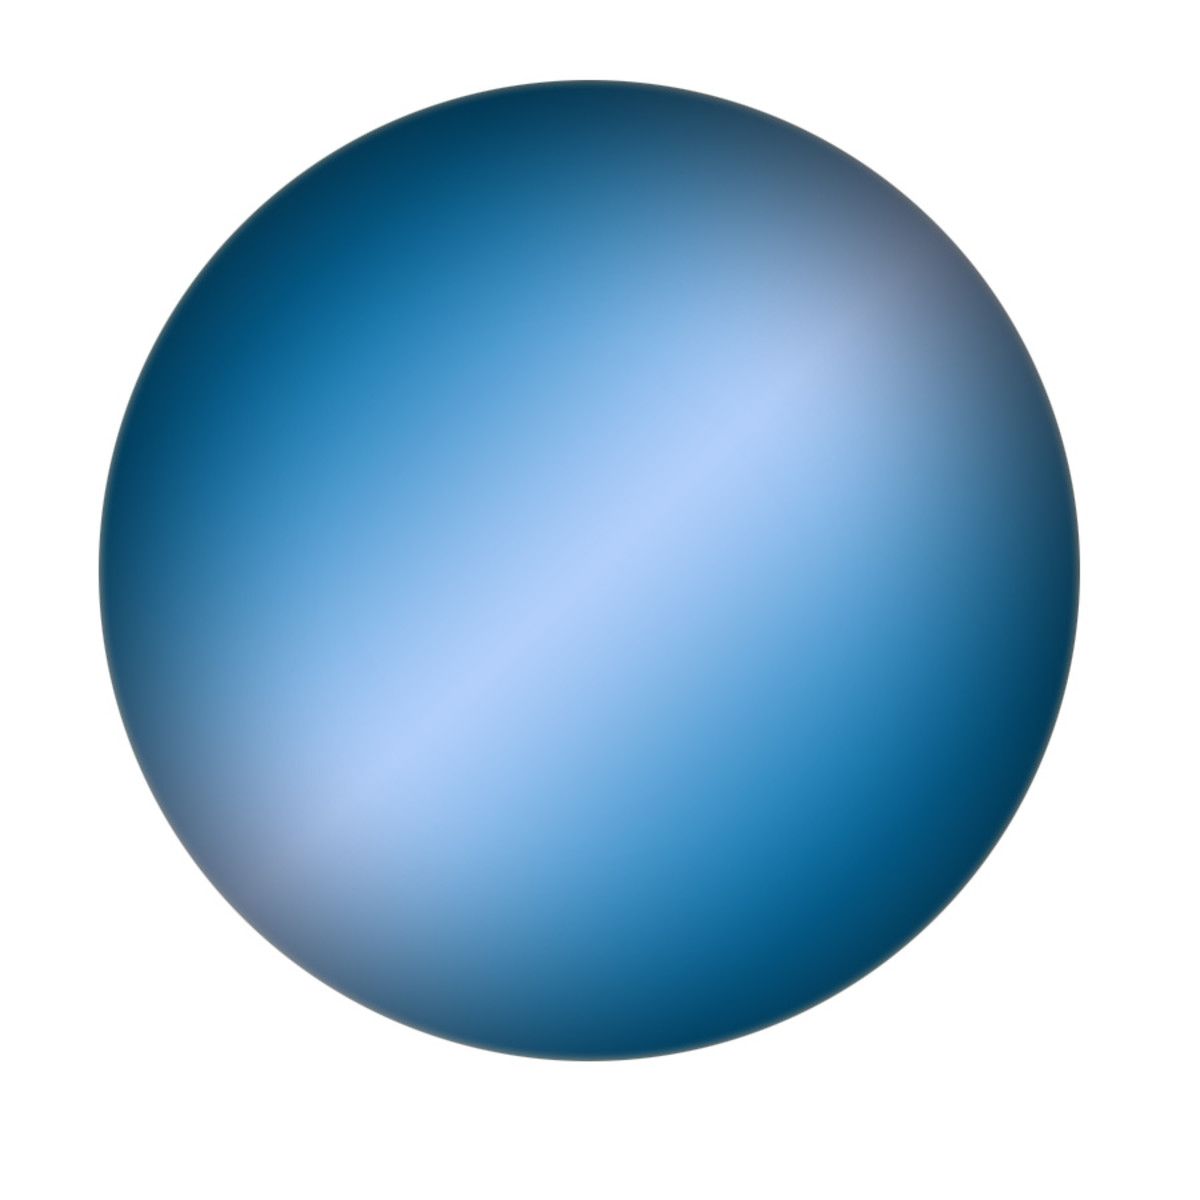 If you learn how to draw a sphere in Photoshop, you can draw a basketball, globe, or soccer ball easily